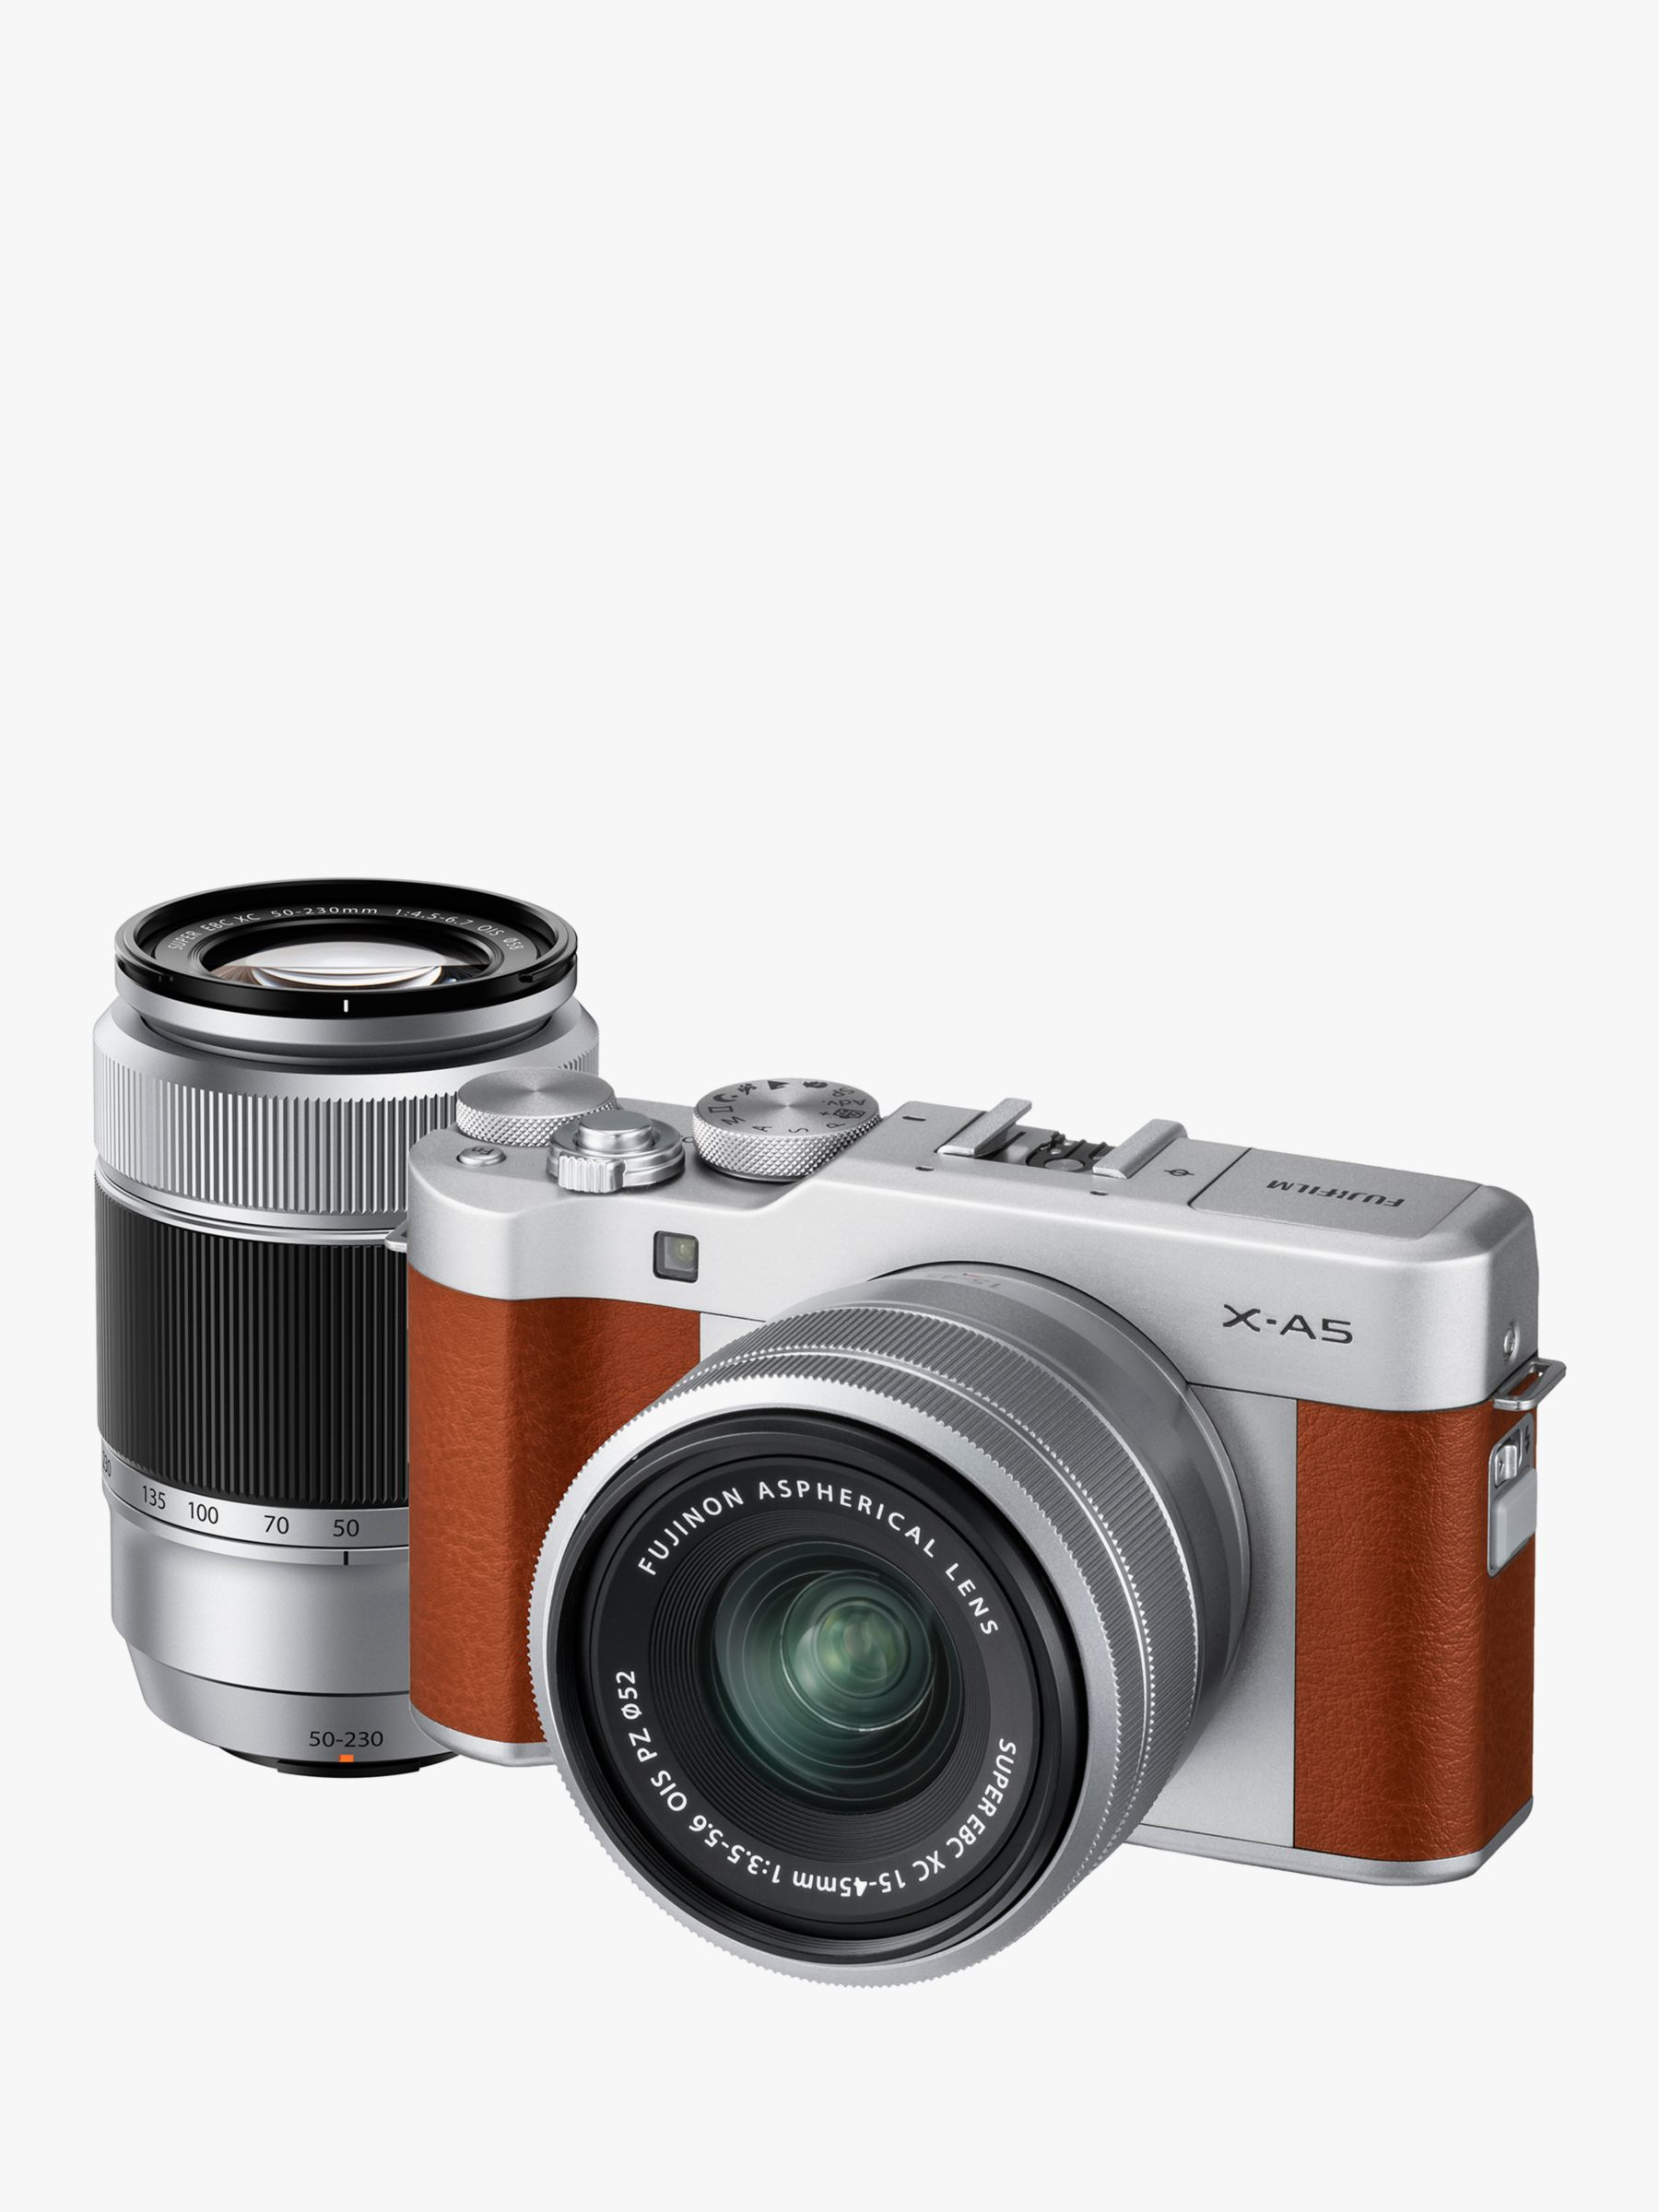 "Buy Fujifilm X-A5 Compact System Camera with XC 15-45mm OIS Lens & XC 50-230mm OIS Lens, 4K Ultra HD, 24.2MP, Wi-Fi, Bluetooth, 3"" Tiltable LCD Touch Screen, Brown & Silver, Double Lens Kit Online at johnlewis.com"